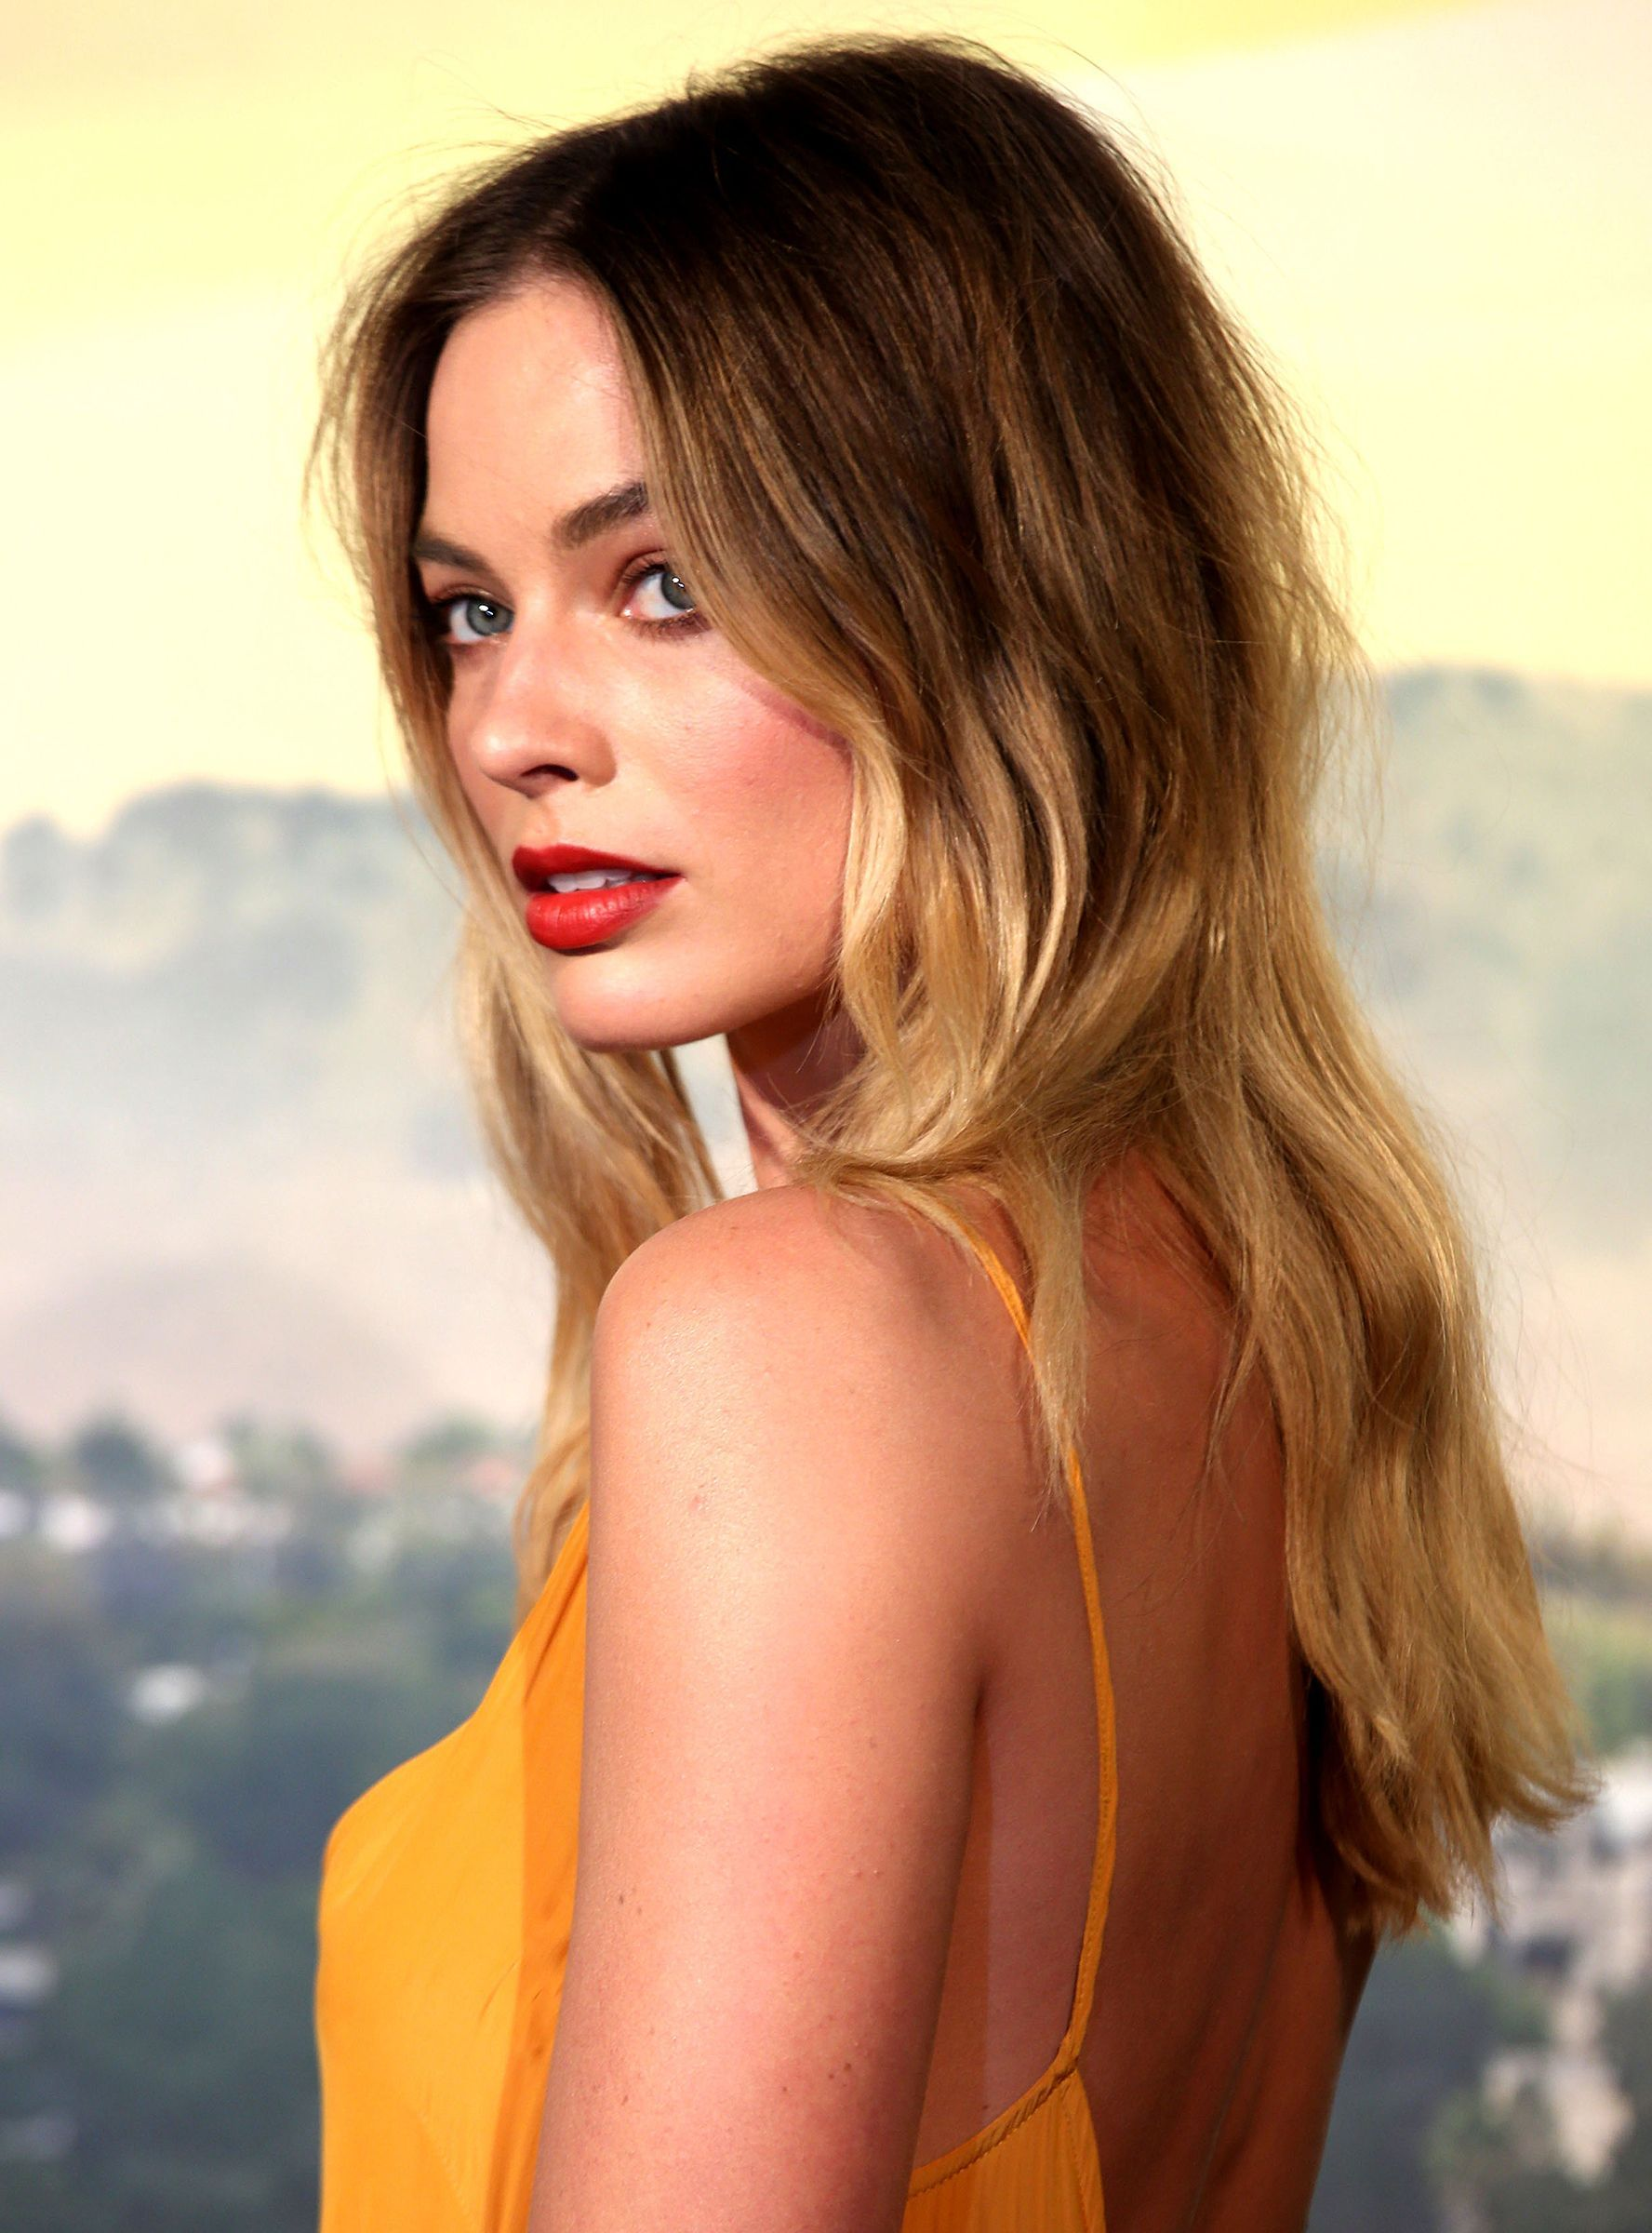 Rooted Citrine Blonde Is The Breakout Hair Colour Trend Of Fall 2019 Refinery29 Margot Robbie Hair Blonde Hair With Highlights Hair Color Trends